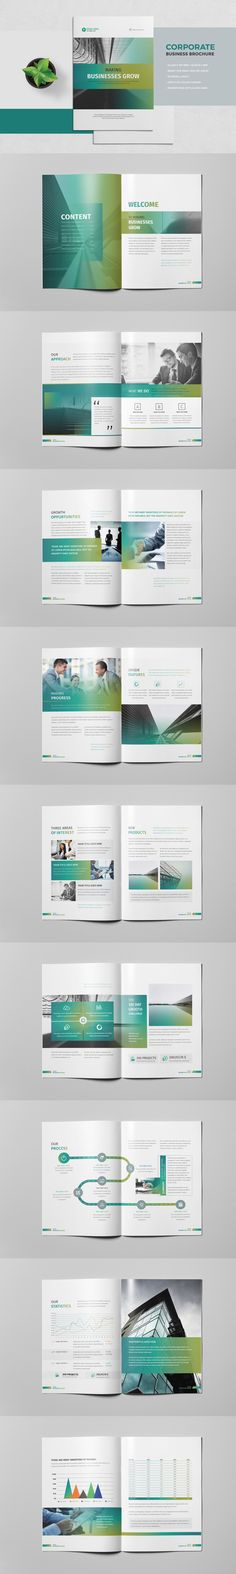 10 Best Cosmetics Brochure Images Layout Design Page Layout